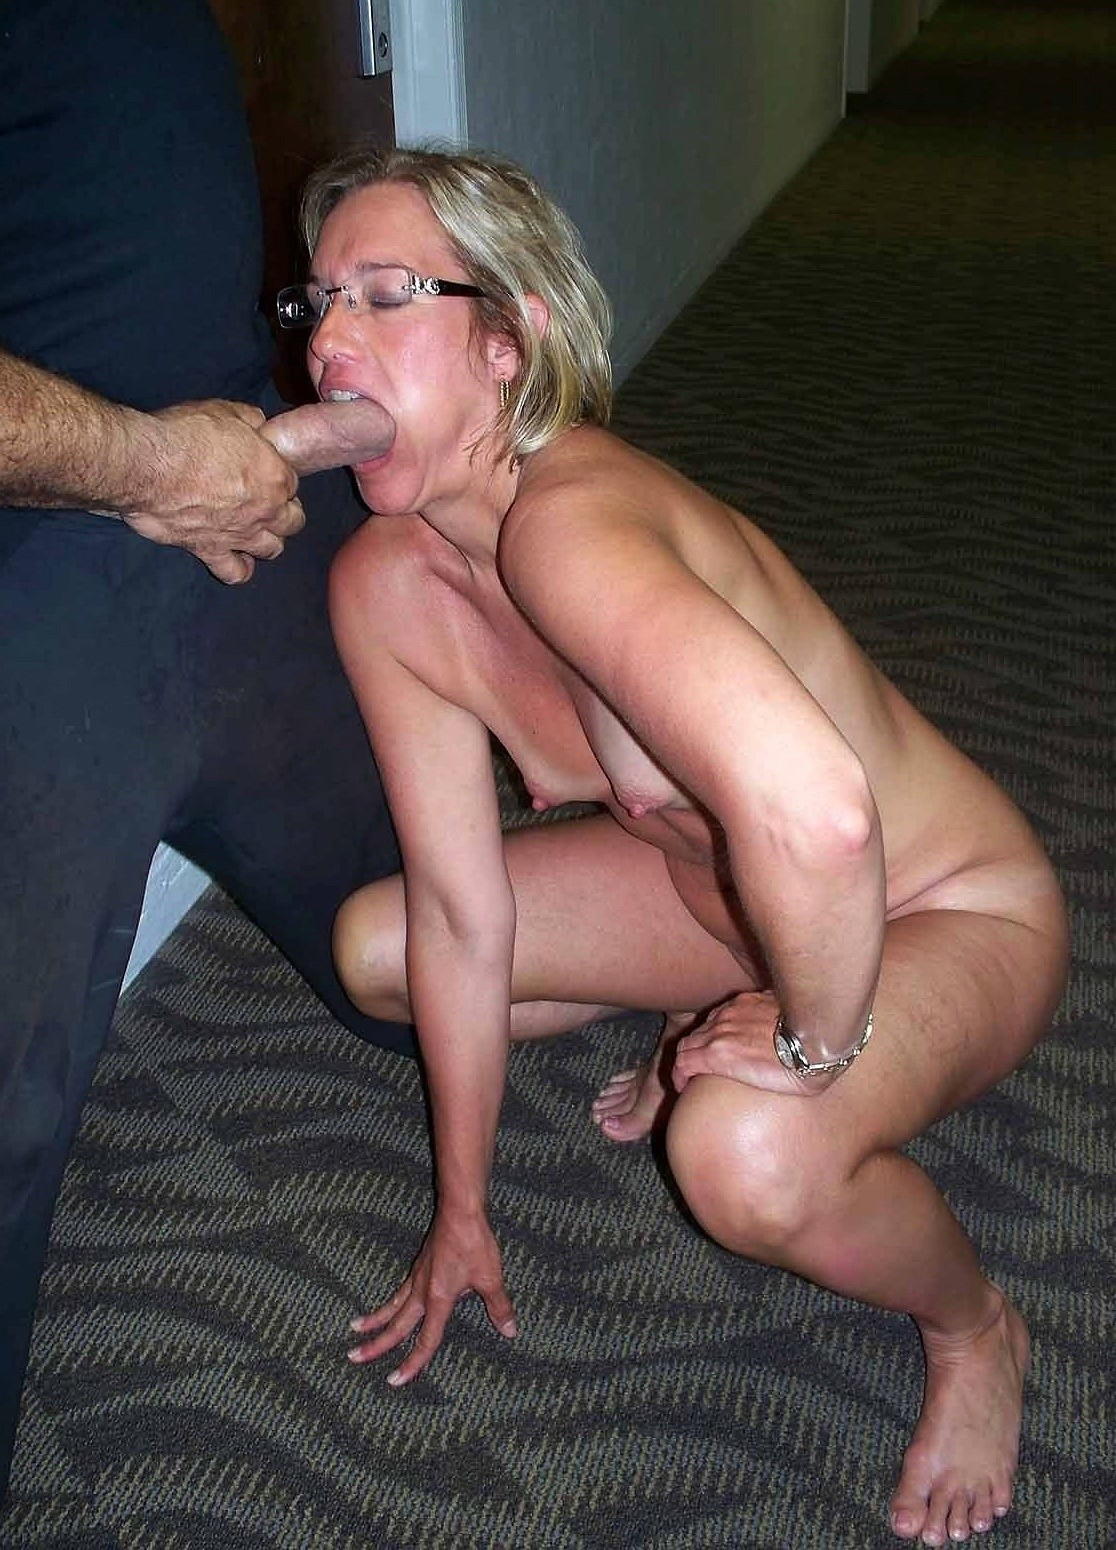 Amateur Prostitute Being Naughty